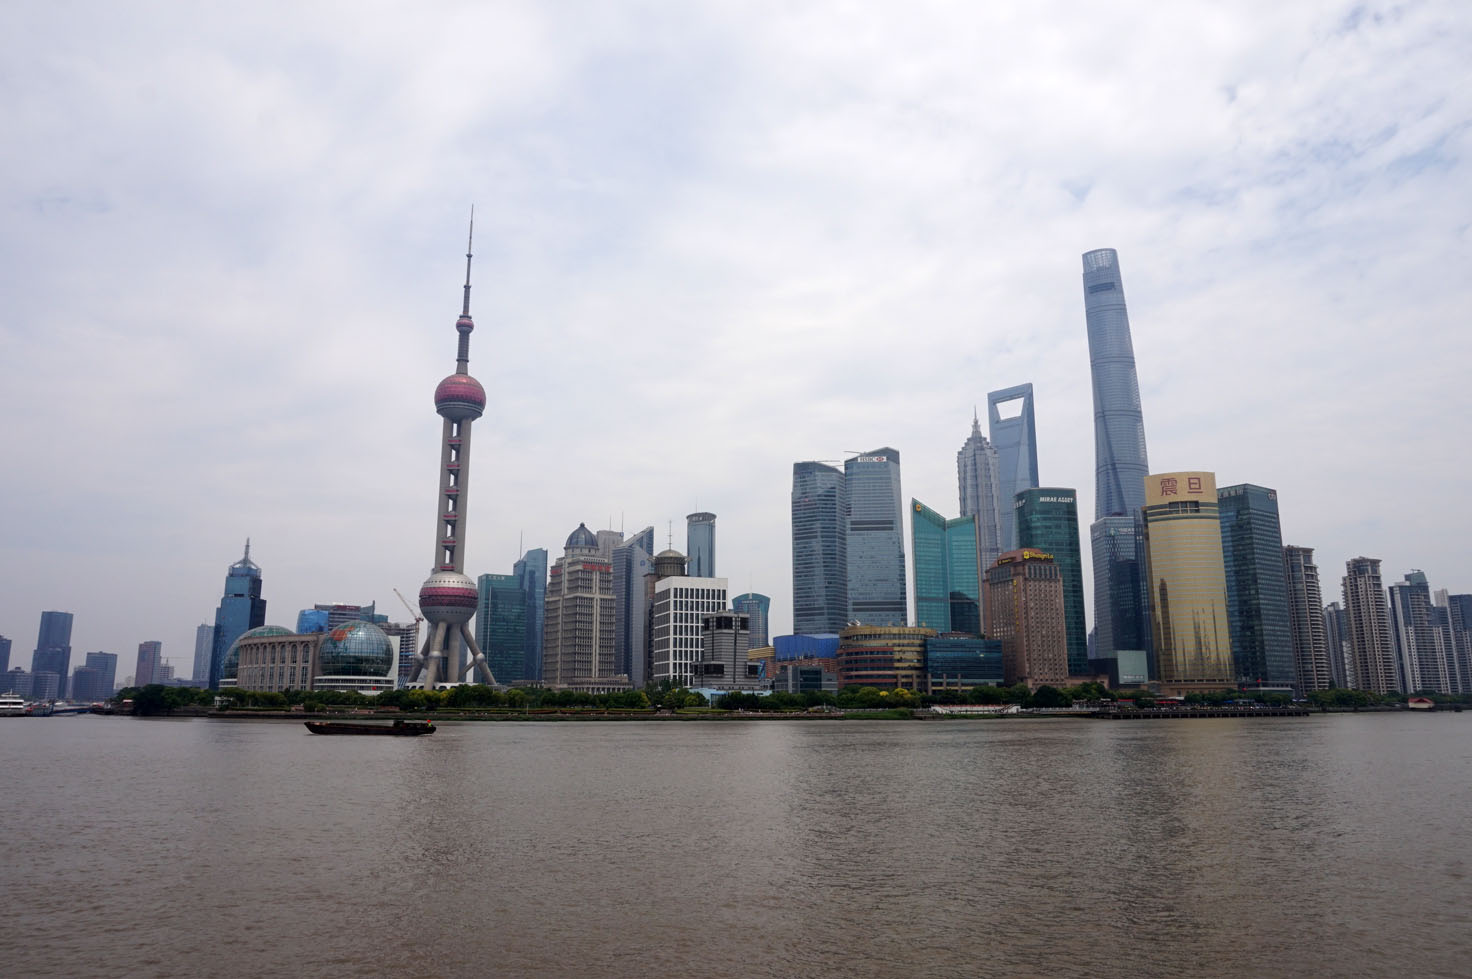 Pudong's skyscrapers